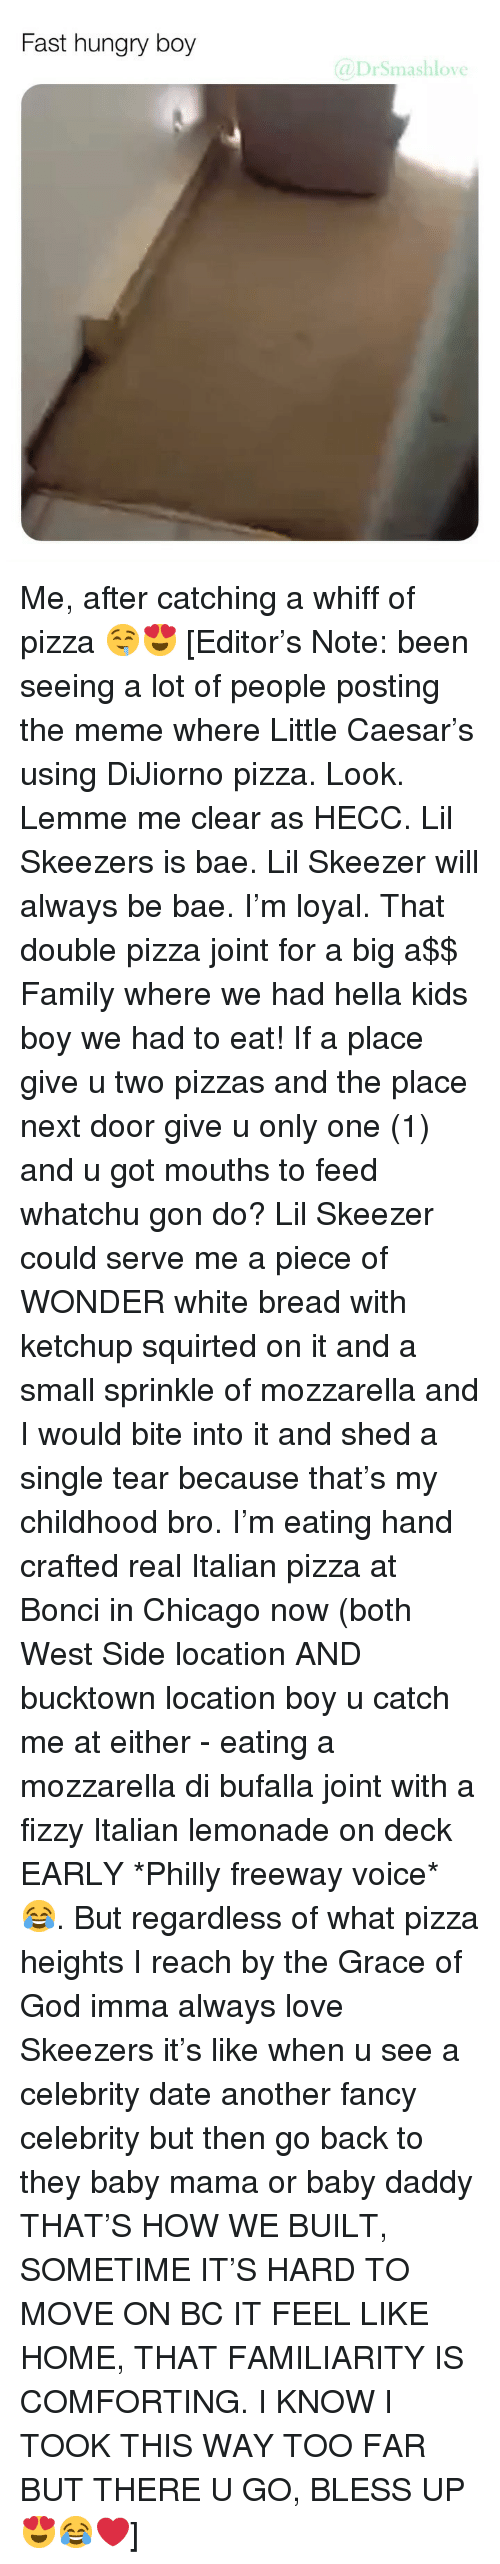 Whatchu: Fast hungry boy  @DrSmashlove Me, after catching a whiff of pizza 🤤😍 [Editor's Note: been seeing a lot of people posting the meme where Little Caesar's using DiJiorno pizza. Look. Lemme me clear as HECC. Lil Skeezers is bae. Lil Skeezer will always be bae. I'm loyal. That double pizza joint for a big a$$ Family where we had hella kids boy we had to eat! If a place give u two pizzas and the place next door give u only one (1) and u got mouths to feed whatchu gon do? Lil Skeezer could serve me a piece of WONDER white bread with ketchup squirted on it and a small sprinkle of mozzarella and I would bite into it and shed a single tear because that's my childhood bro. I'm eating hand crafted real Italian pizza at Bonci in Chicago now (both West Side location AND bucktown location boy u catch me at either - eating a mozzarella di bufalla joint with a fizzy Italian lemonade on deck EARLY *Philly freeway voice* 😂. But regardless of what pizza heights I reach by the Grace of God imma always love Skeezers it's like when u see a celebrity date another fancy celebrity but then go back to they baby mama or baby daddy THAT'S HOW WE BUILT, SOMETIME IT'S HARD TO MOVE ON BC IT FEEL LIKE HOME, THAT FAMILIARITY IS COMFORTING. I KNOW I TOOK THIS WAY TOO FAR BUT THERE U GO, BLESS UP 😍😂❤️]